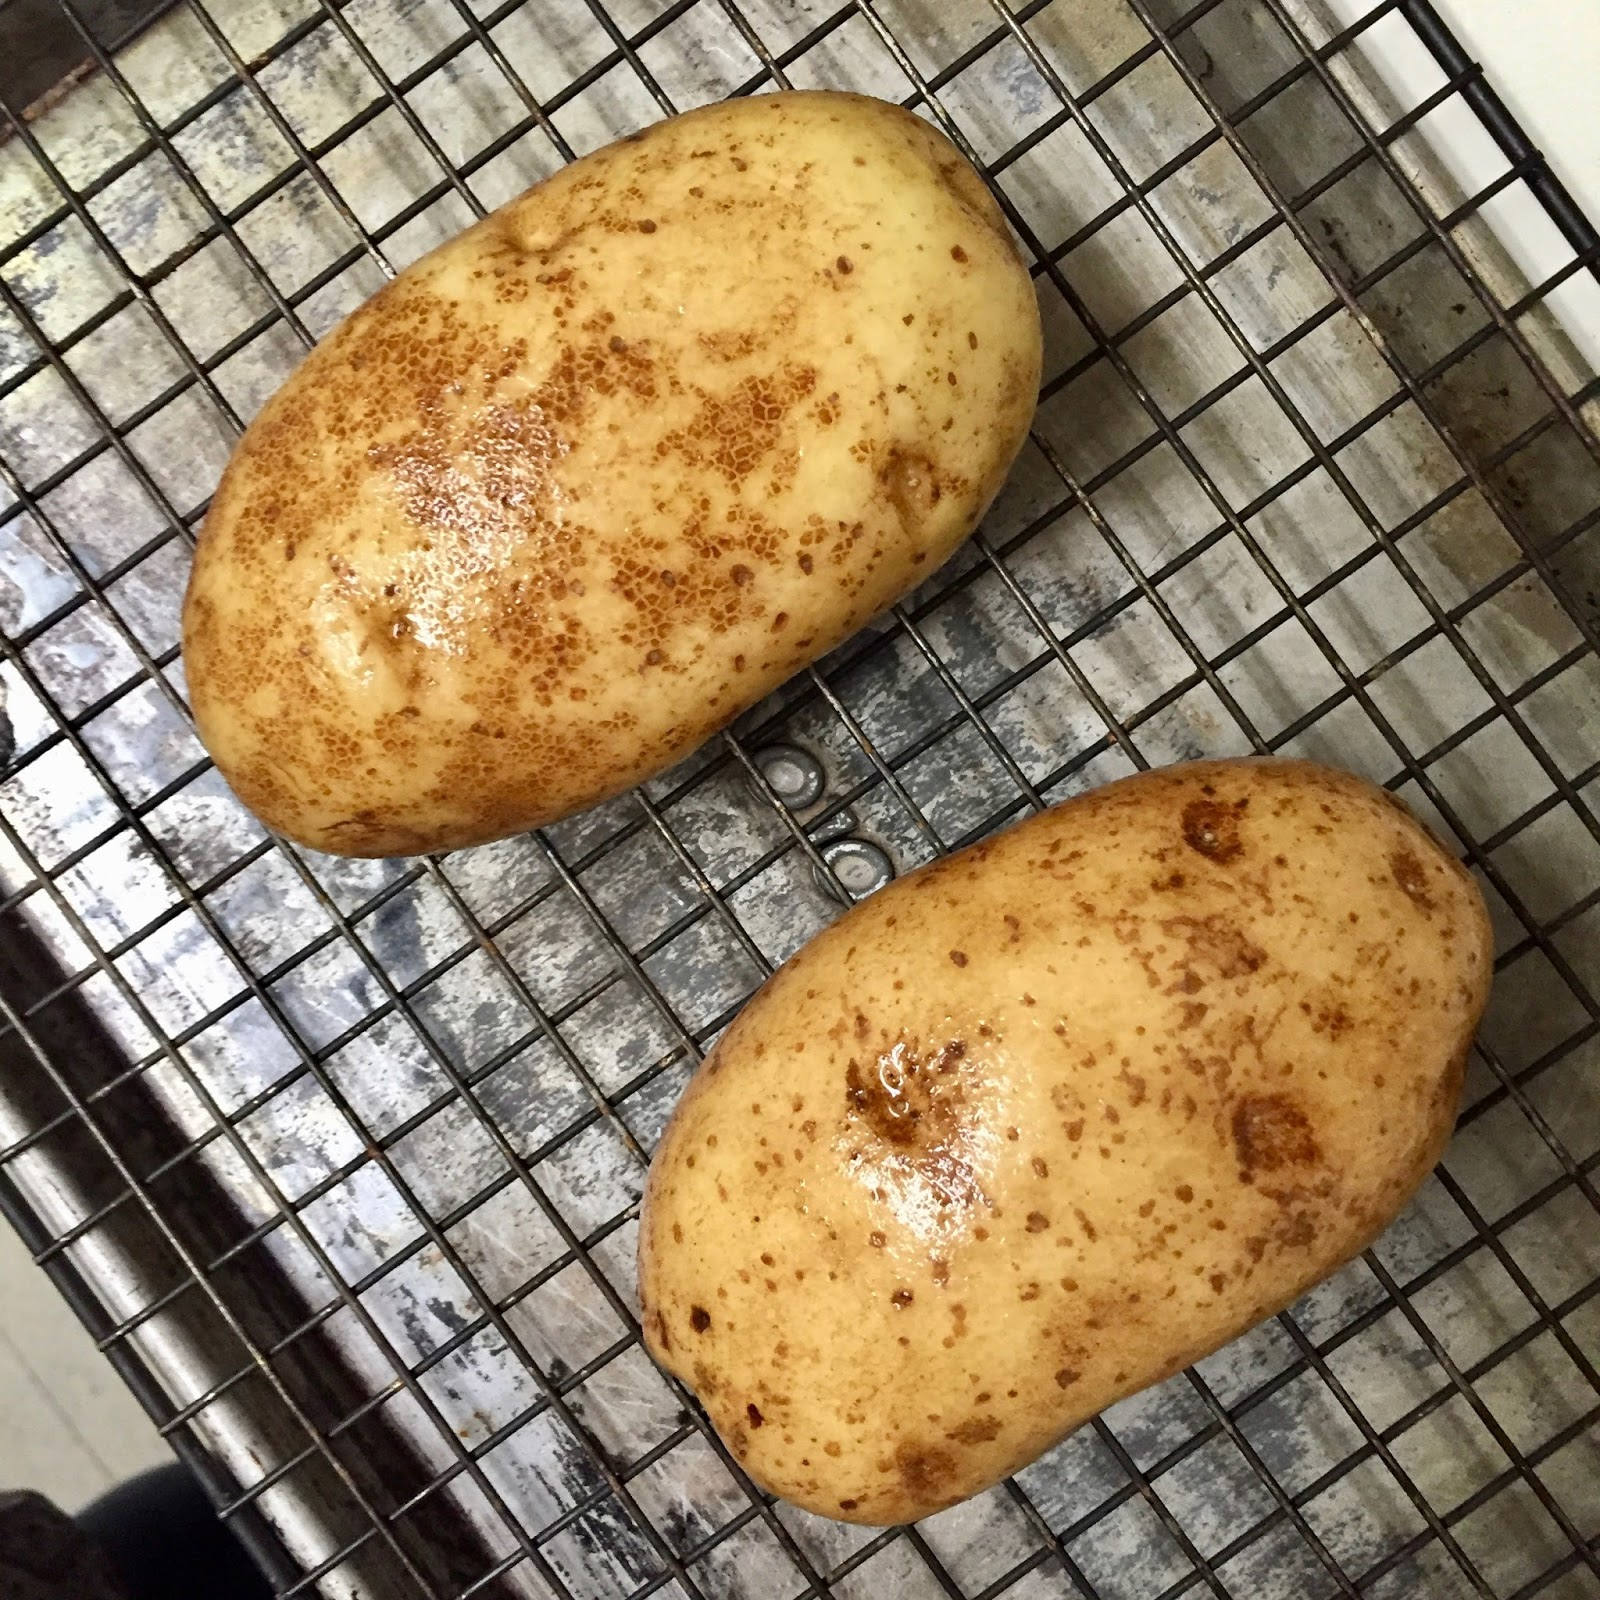 remove potatoes from oven and brush tops and sides with olive oil or bacon or duck fat return potatoes to oven and continue to bake for 10 minutes - Americas Test Kitchen Baked Potato